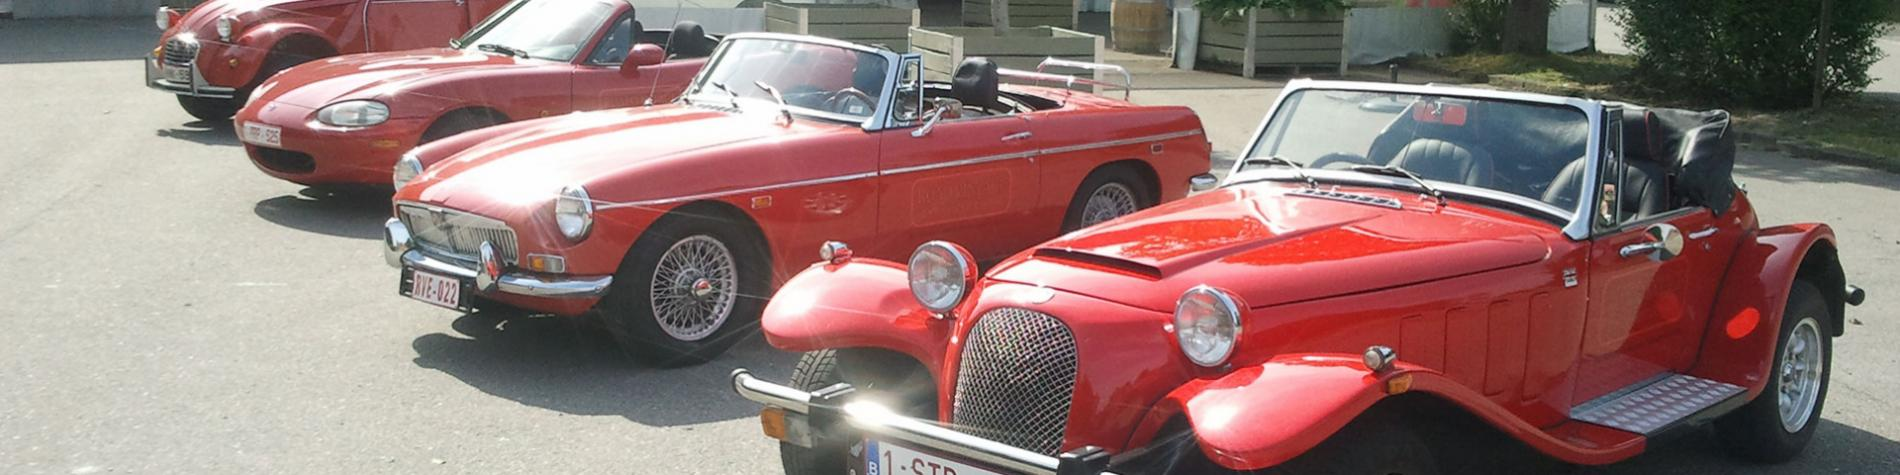 escapade - voiture - collection - Road Vintage Experience